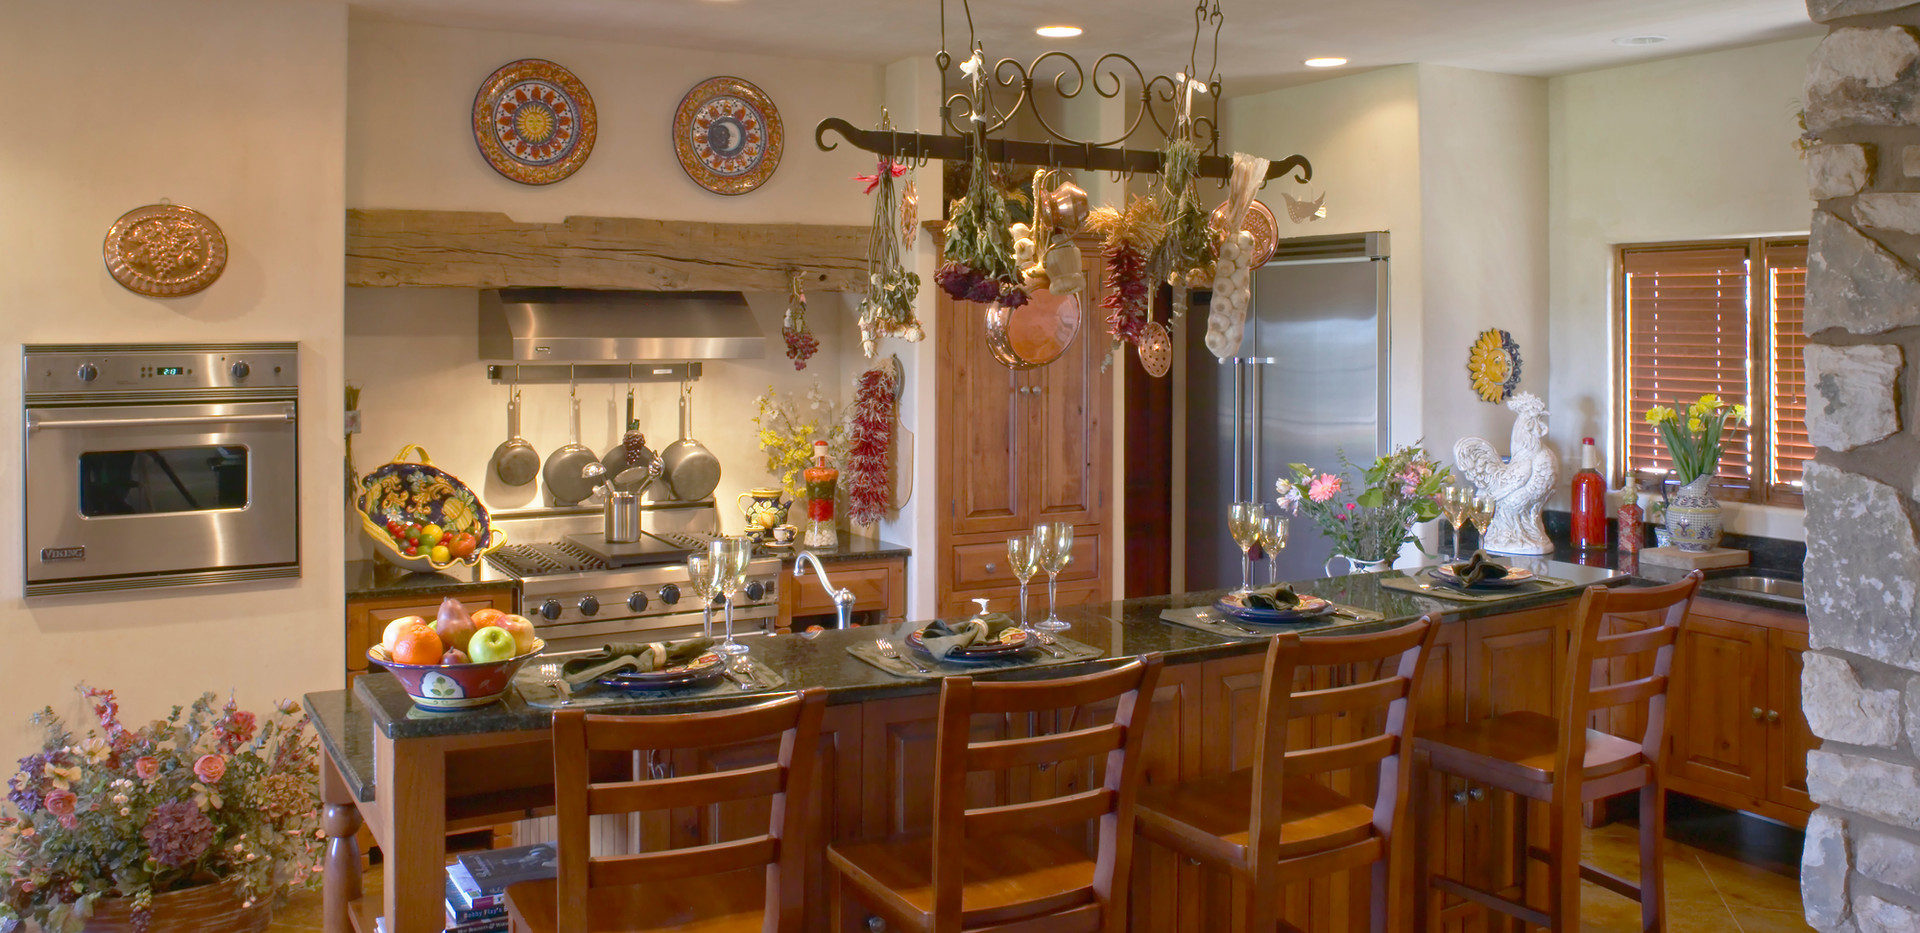 05 todd kitchen 2_home.jpg